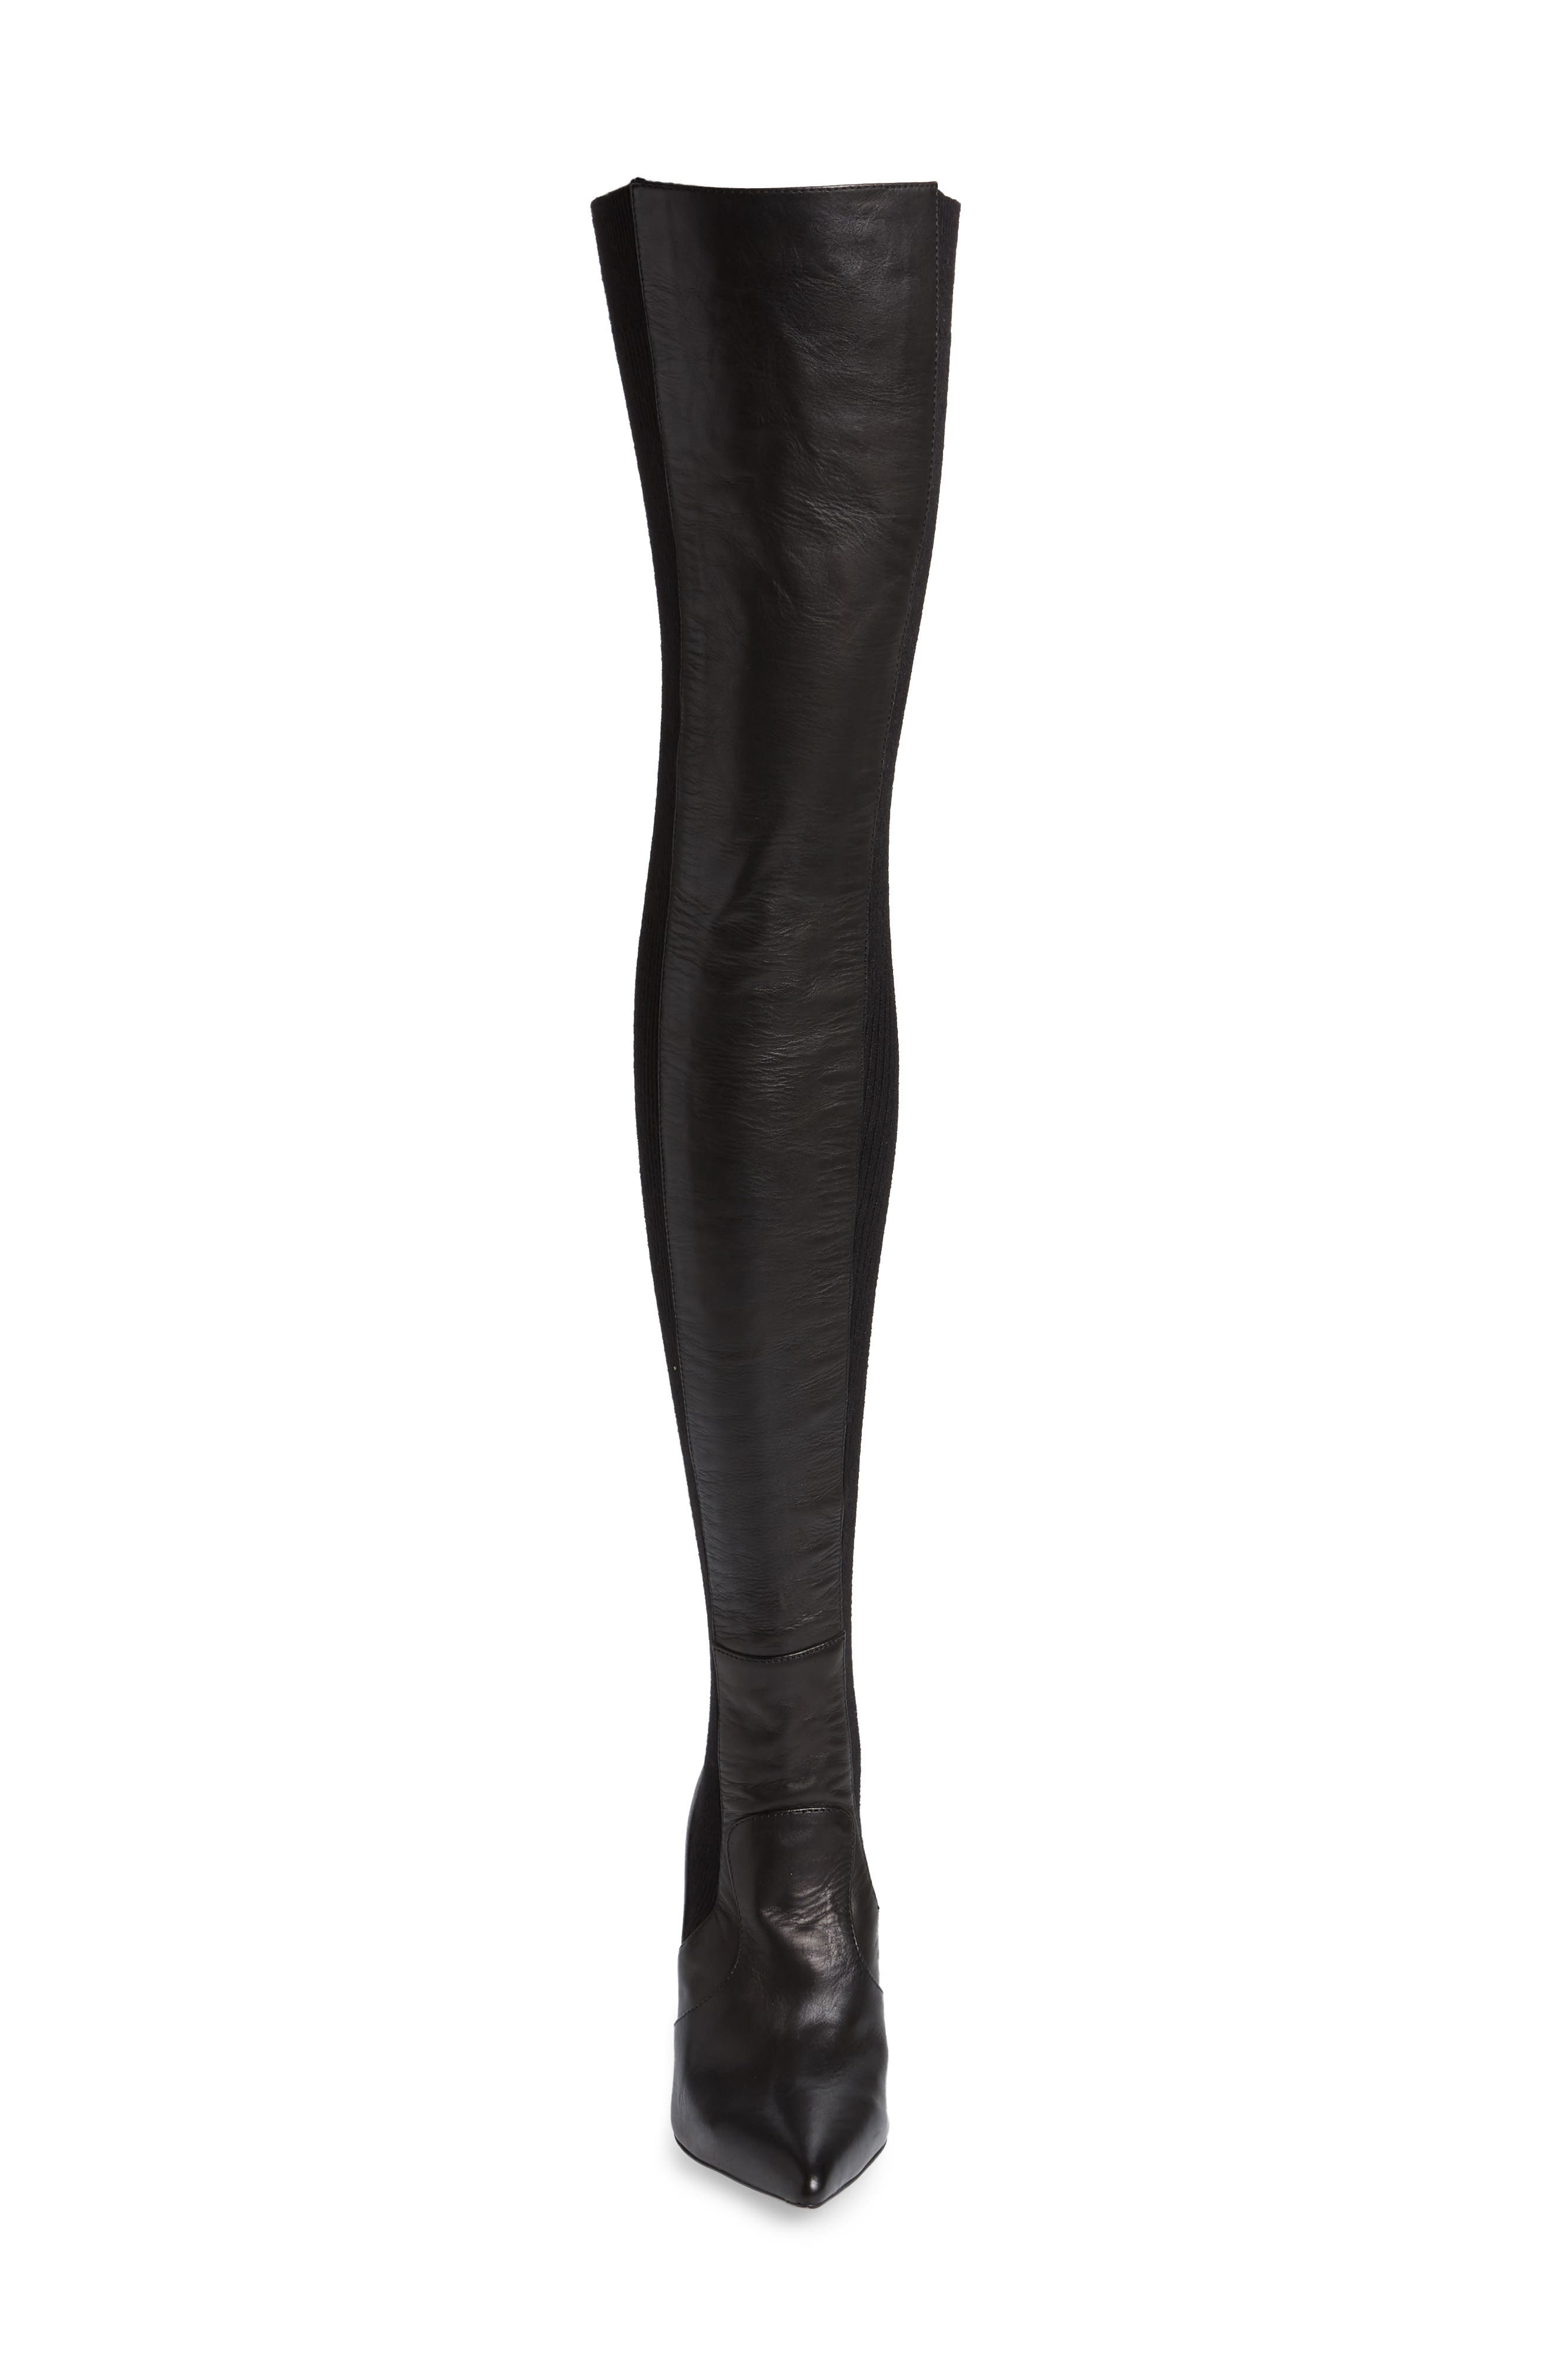 TONY BIANCO,                             Dahlia Over the Knee Boot,                             Alternate thumbnail 4, color,                             001